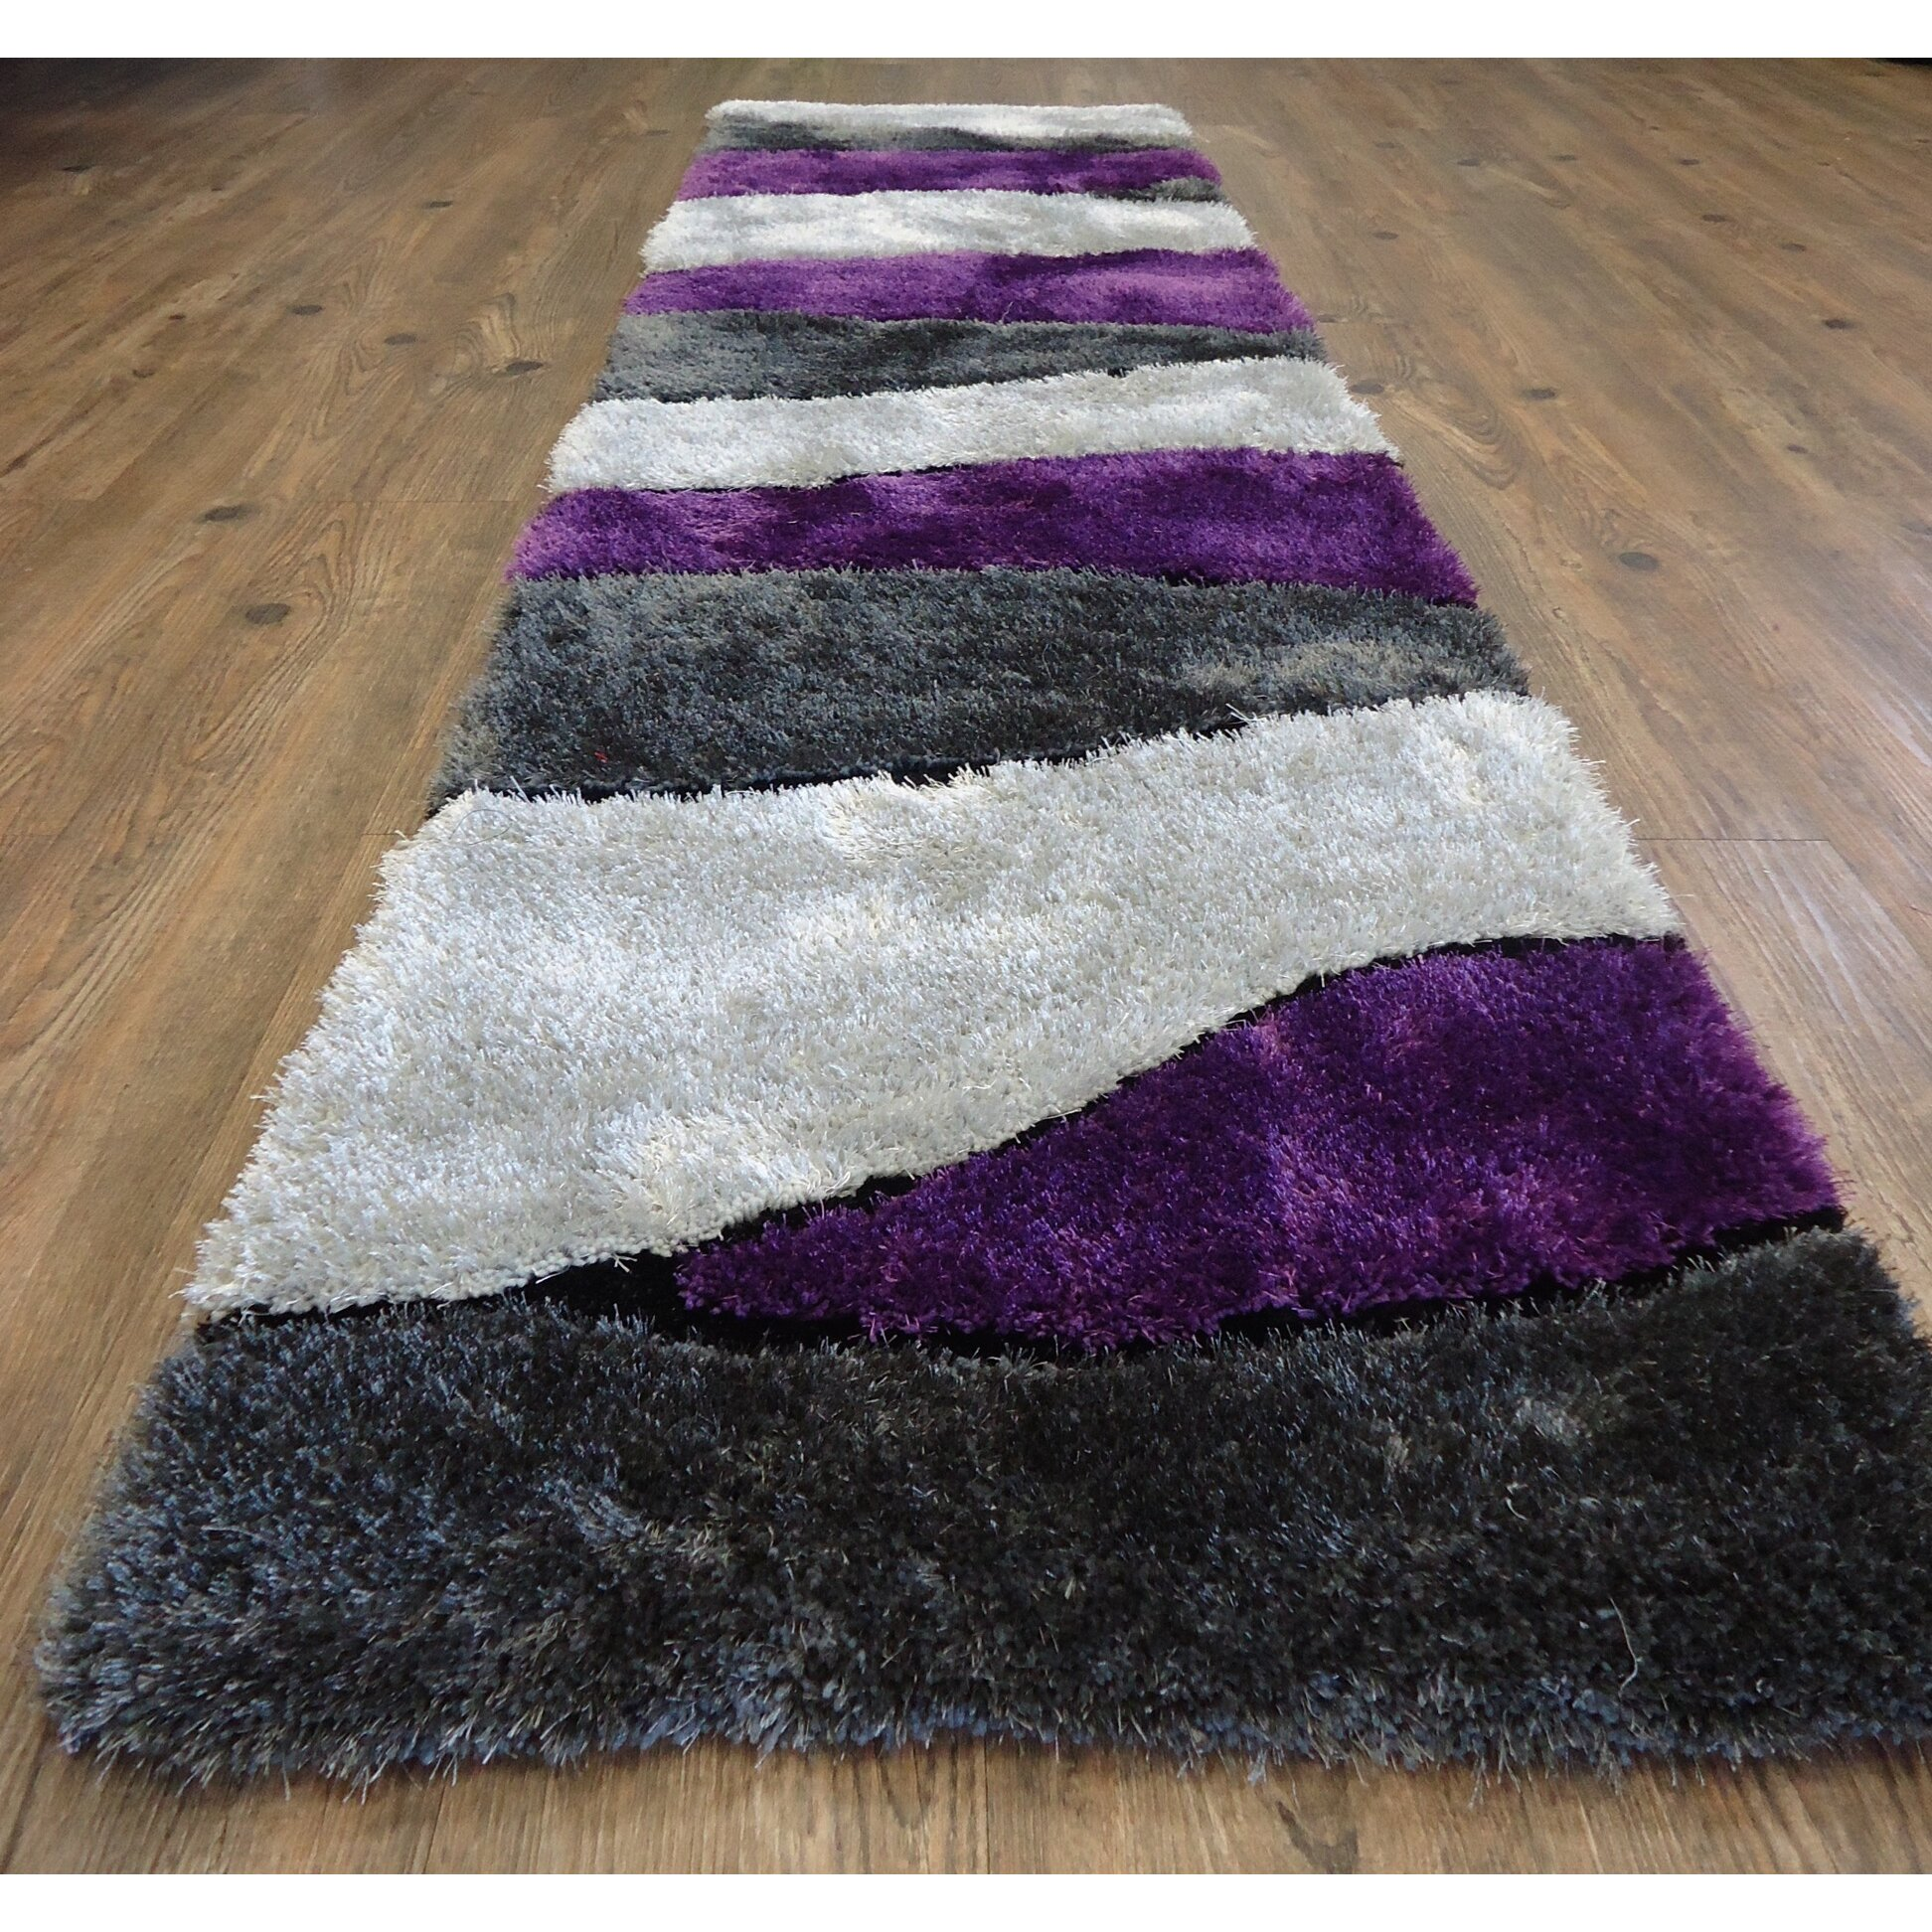 Purple And Gray Area Rugs: Rug Factory Plus Living Shag Hand-Tufted Gray/Purple Area